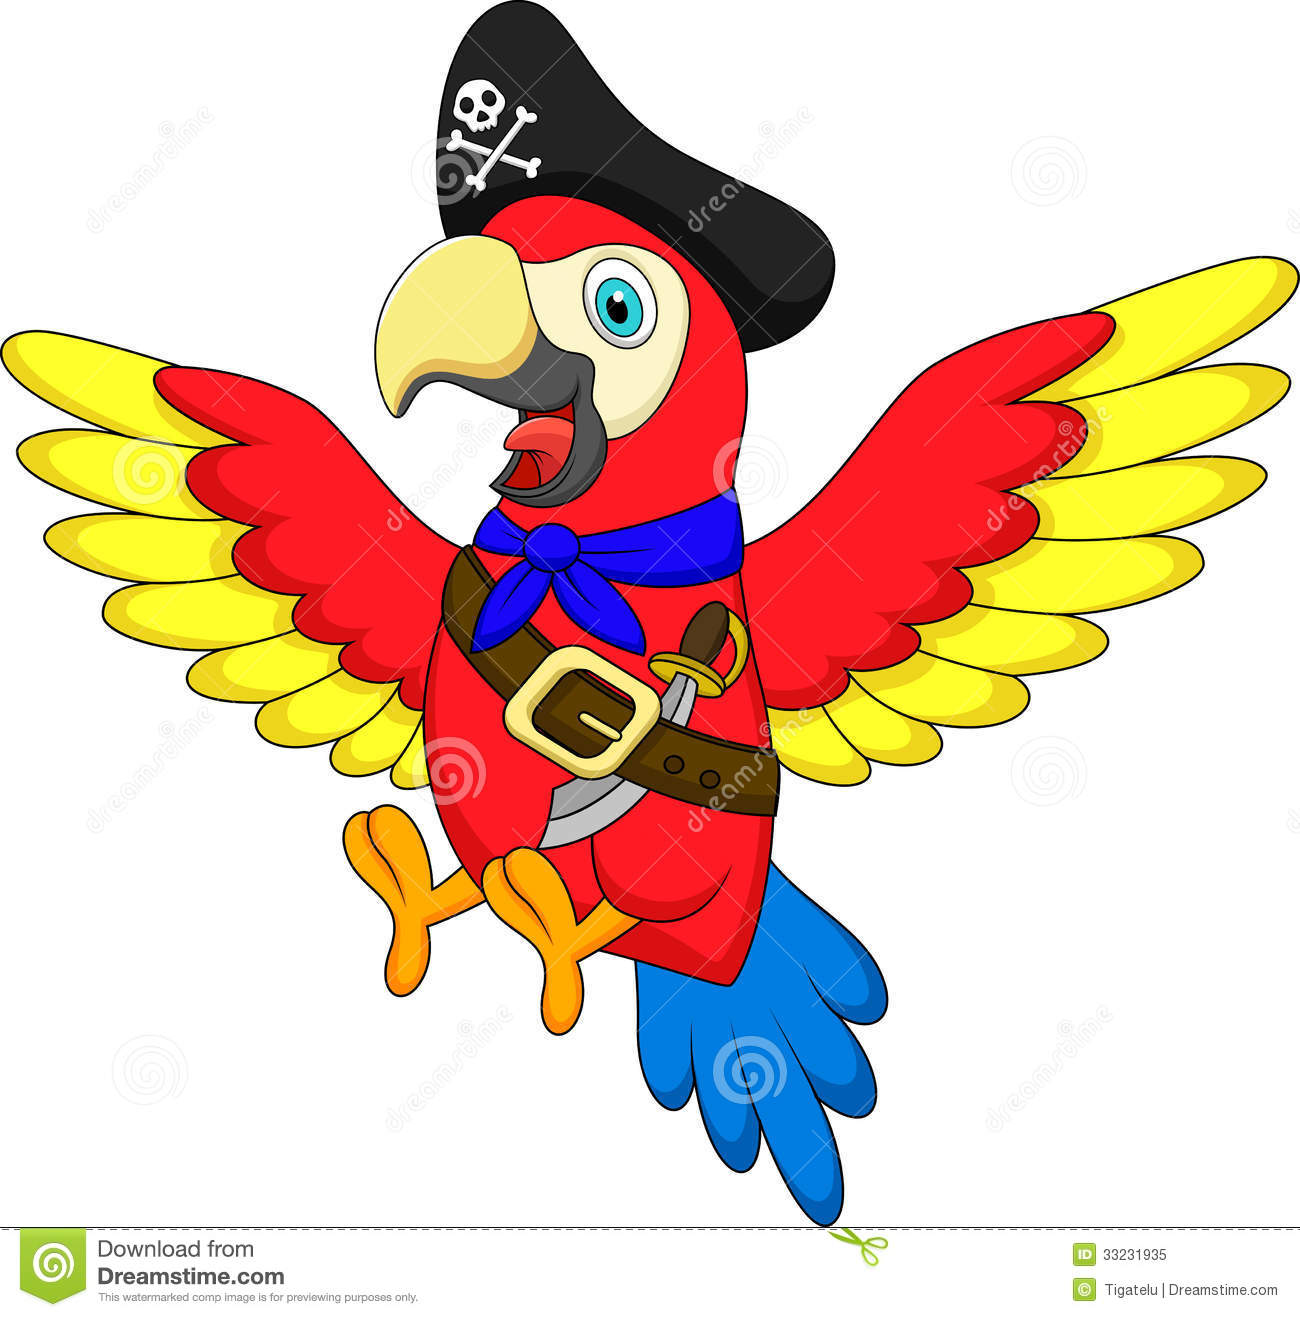 Cute Parrot Pirate Cartoon Royalty Free Stock Photo   Image  33231935